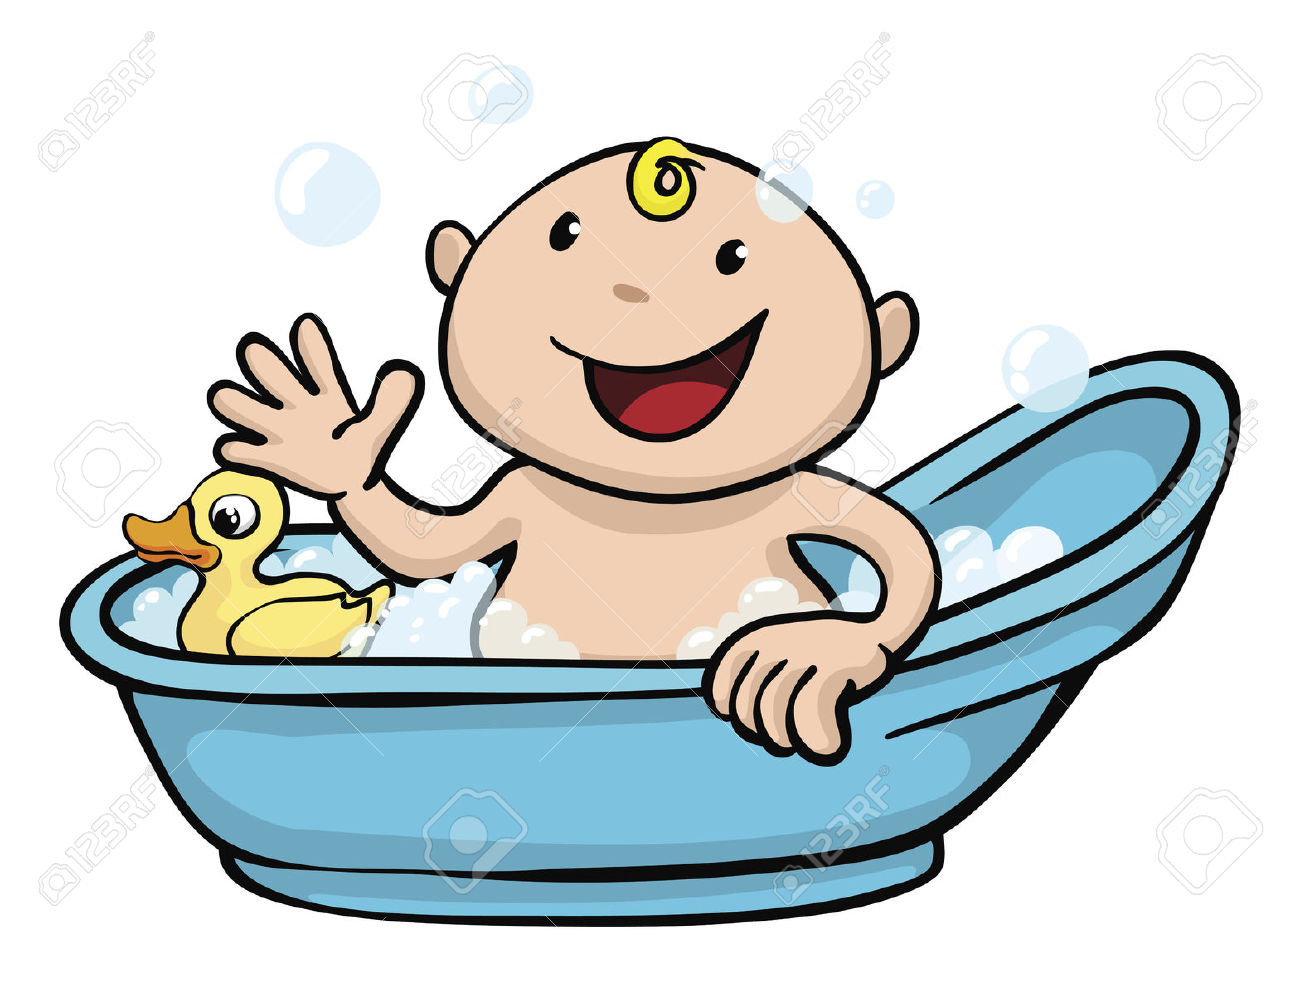 Bathing clipart - Clipground